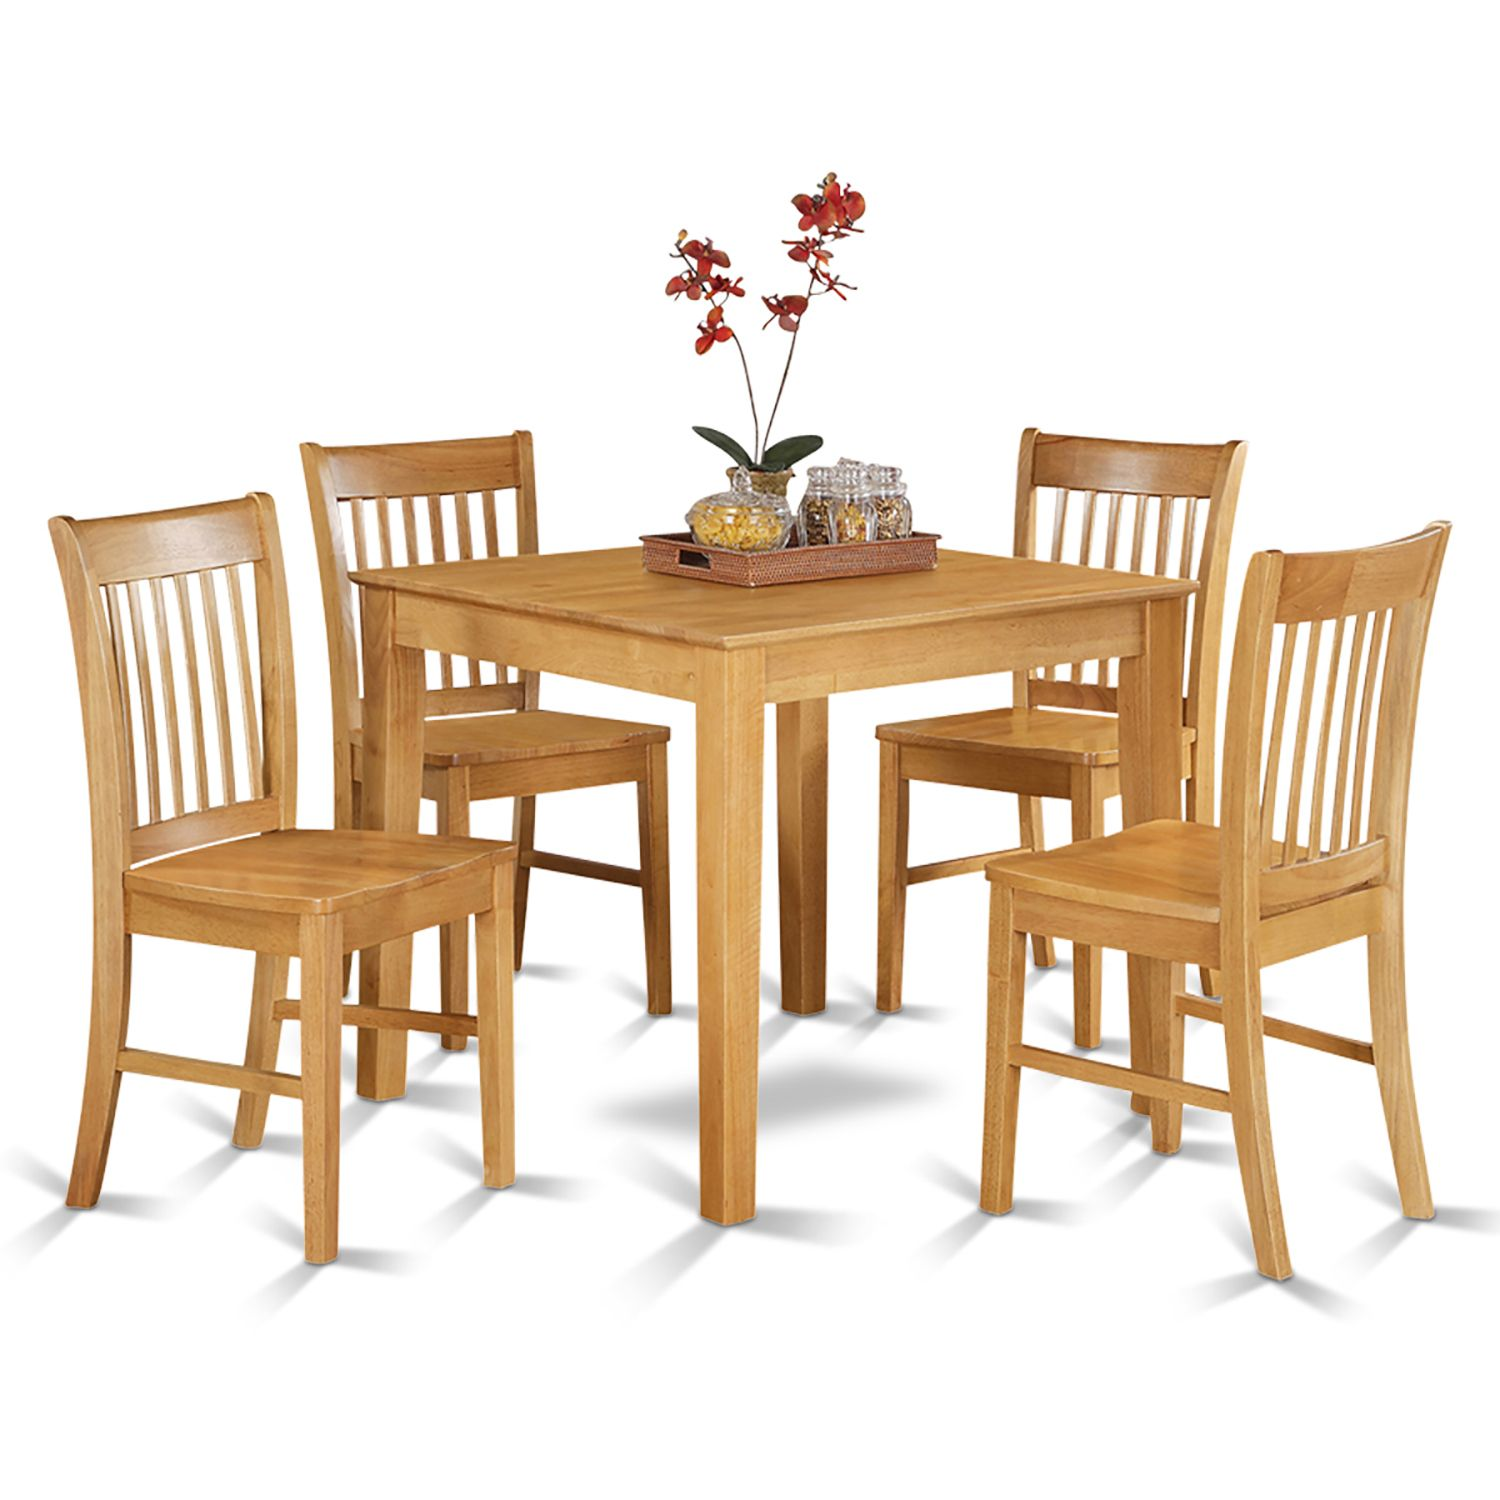 oak square table and 4 kitchen chairs 5 piece dining set for friends squares and products. Black Bedroom Furniture Sets. Home Design Ideas